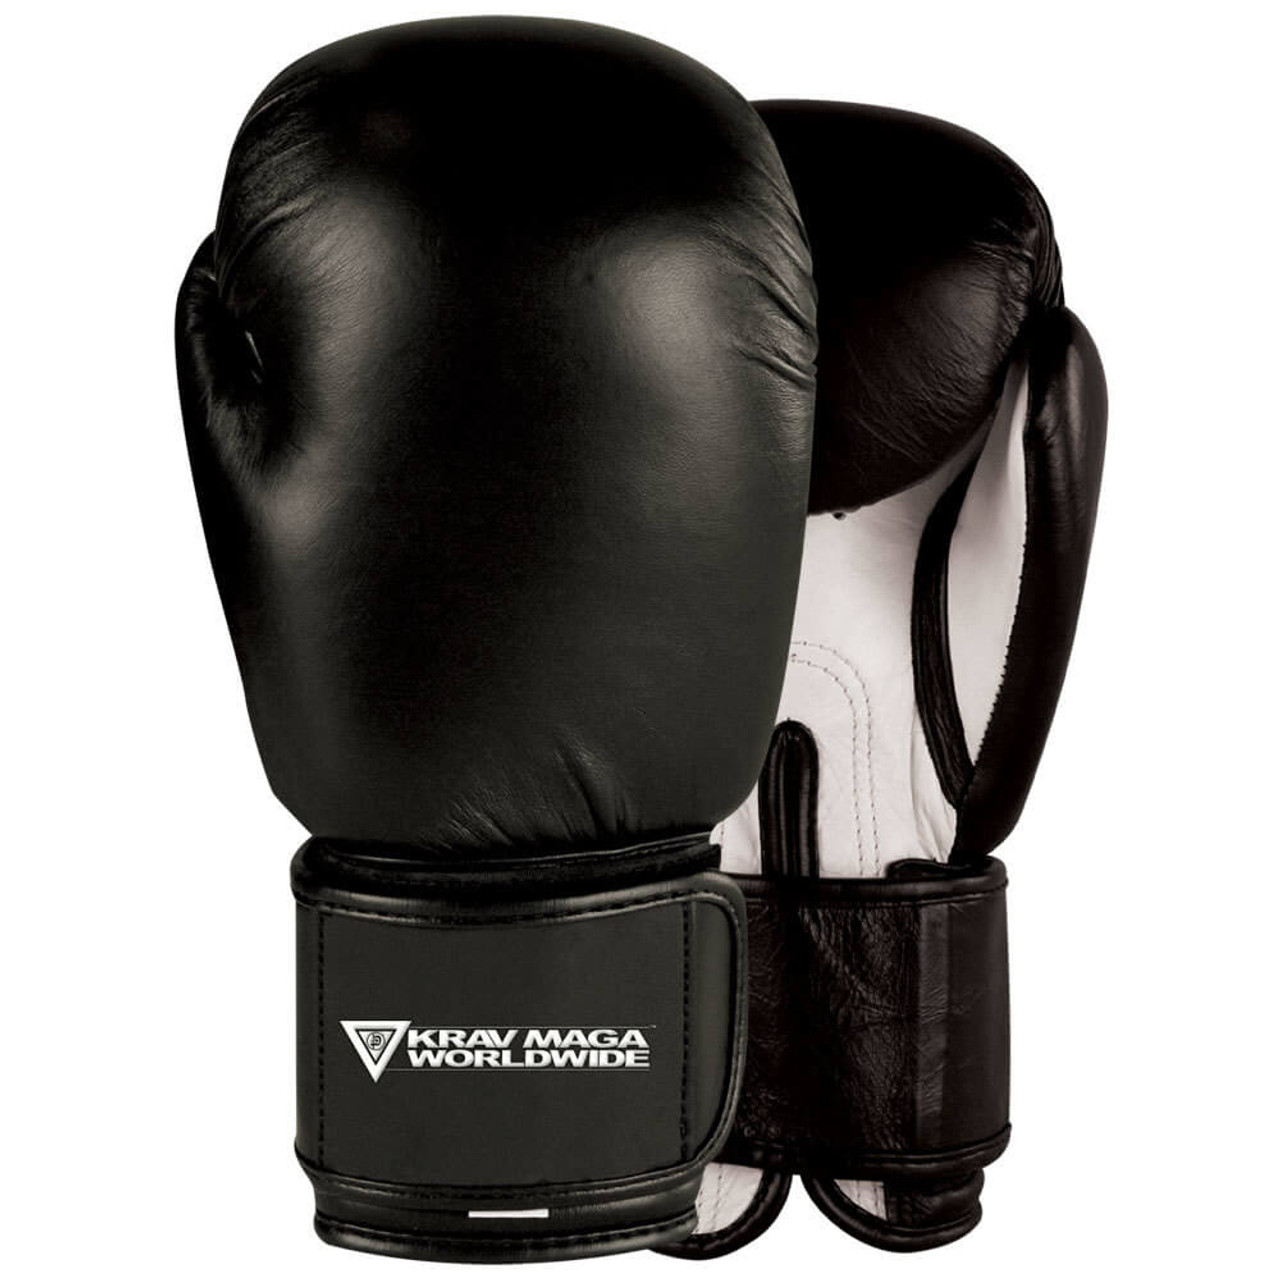 Krav Maga Leather Boxing Gloves